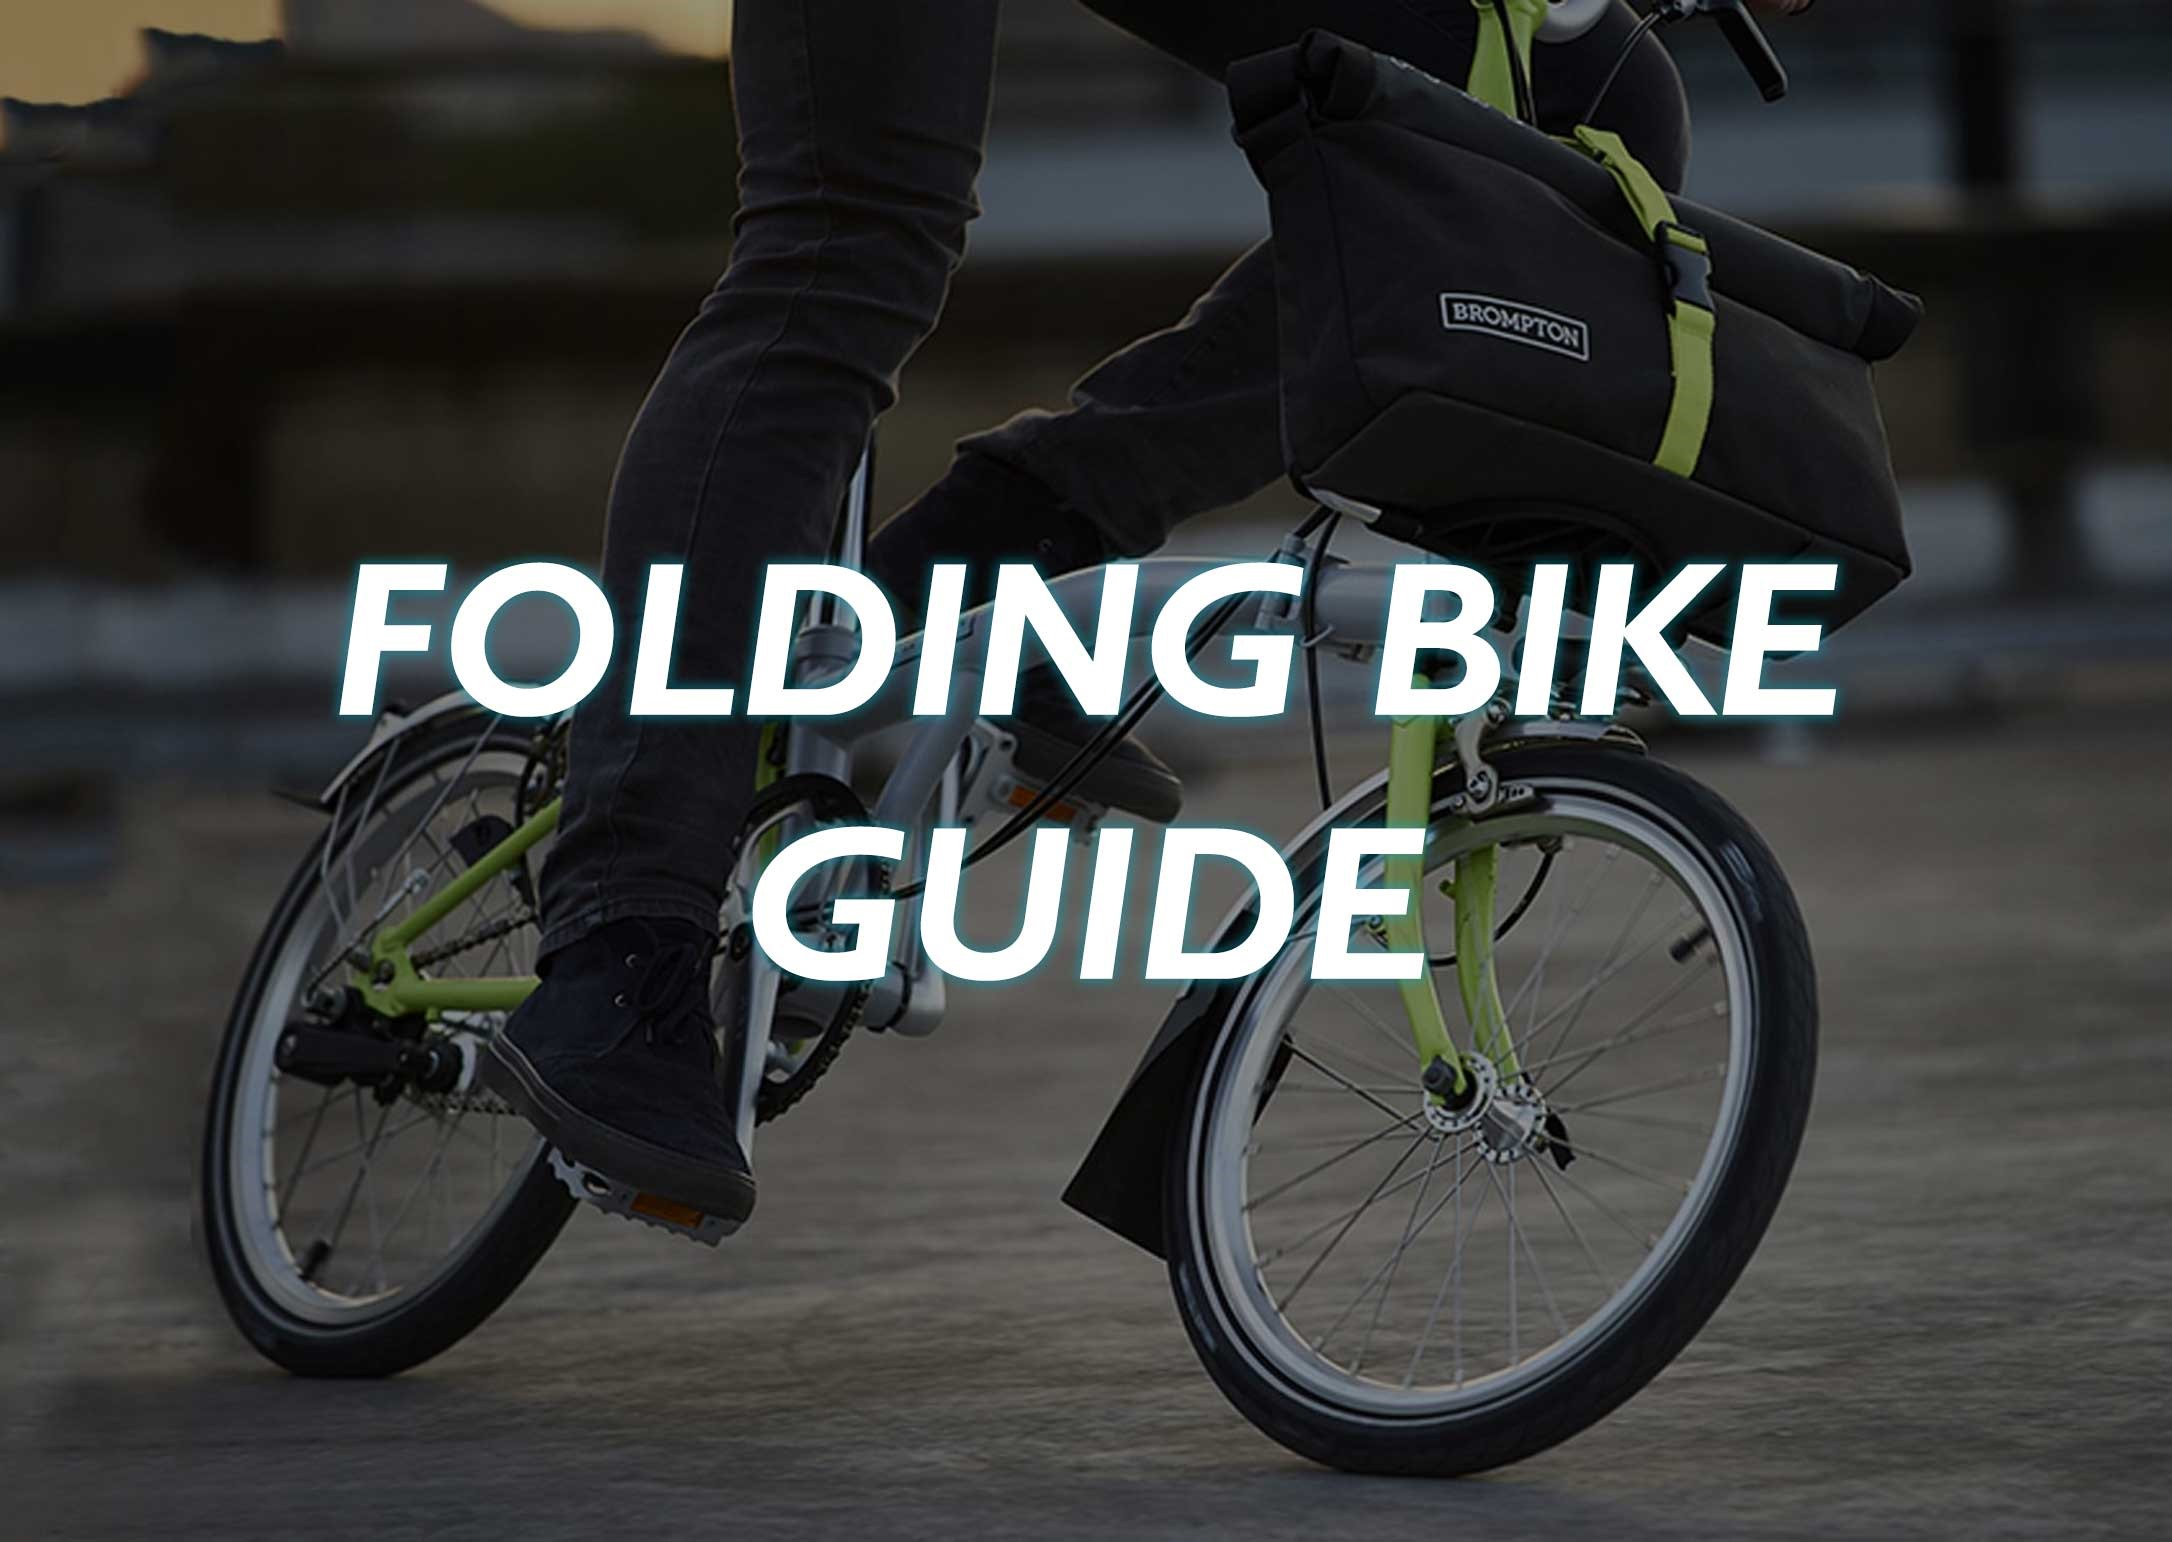 folding-bike-guide-tile